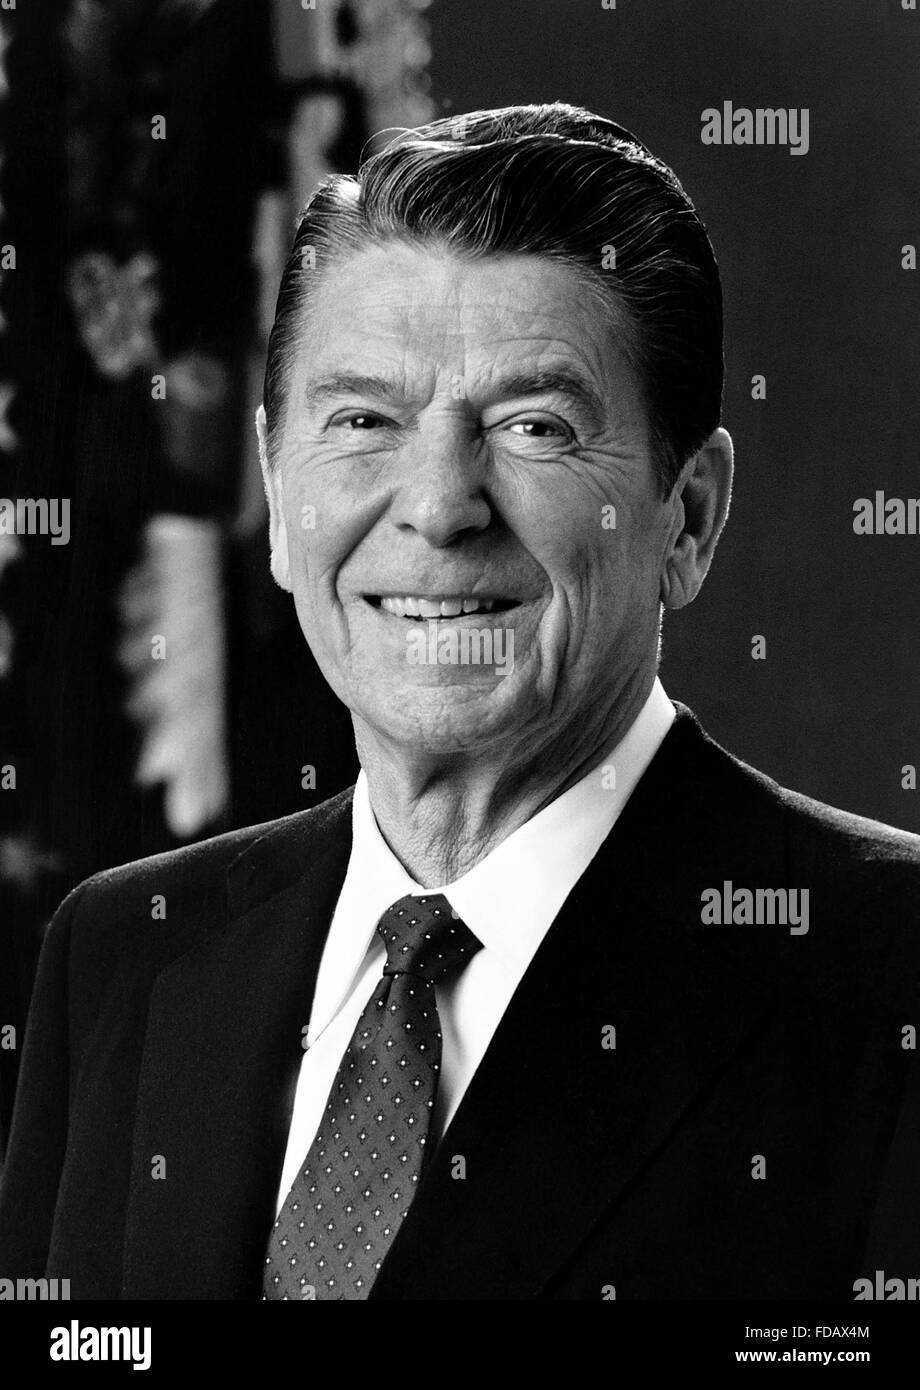 Official White House photo of Ronald Reagan, the 40th President of the USA, c.1981-1983 - Stock Image